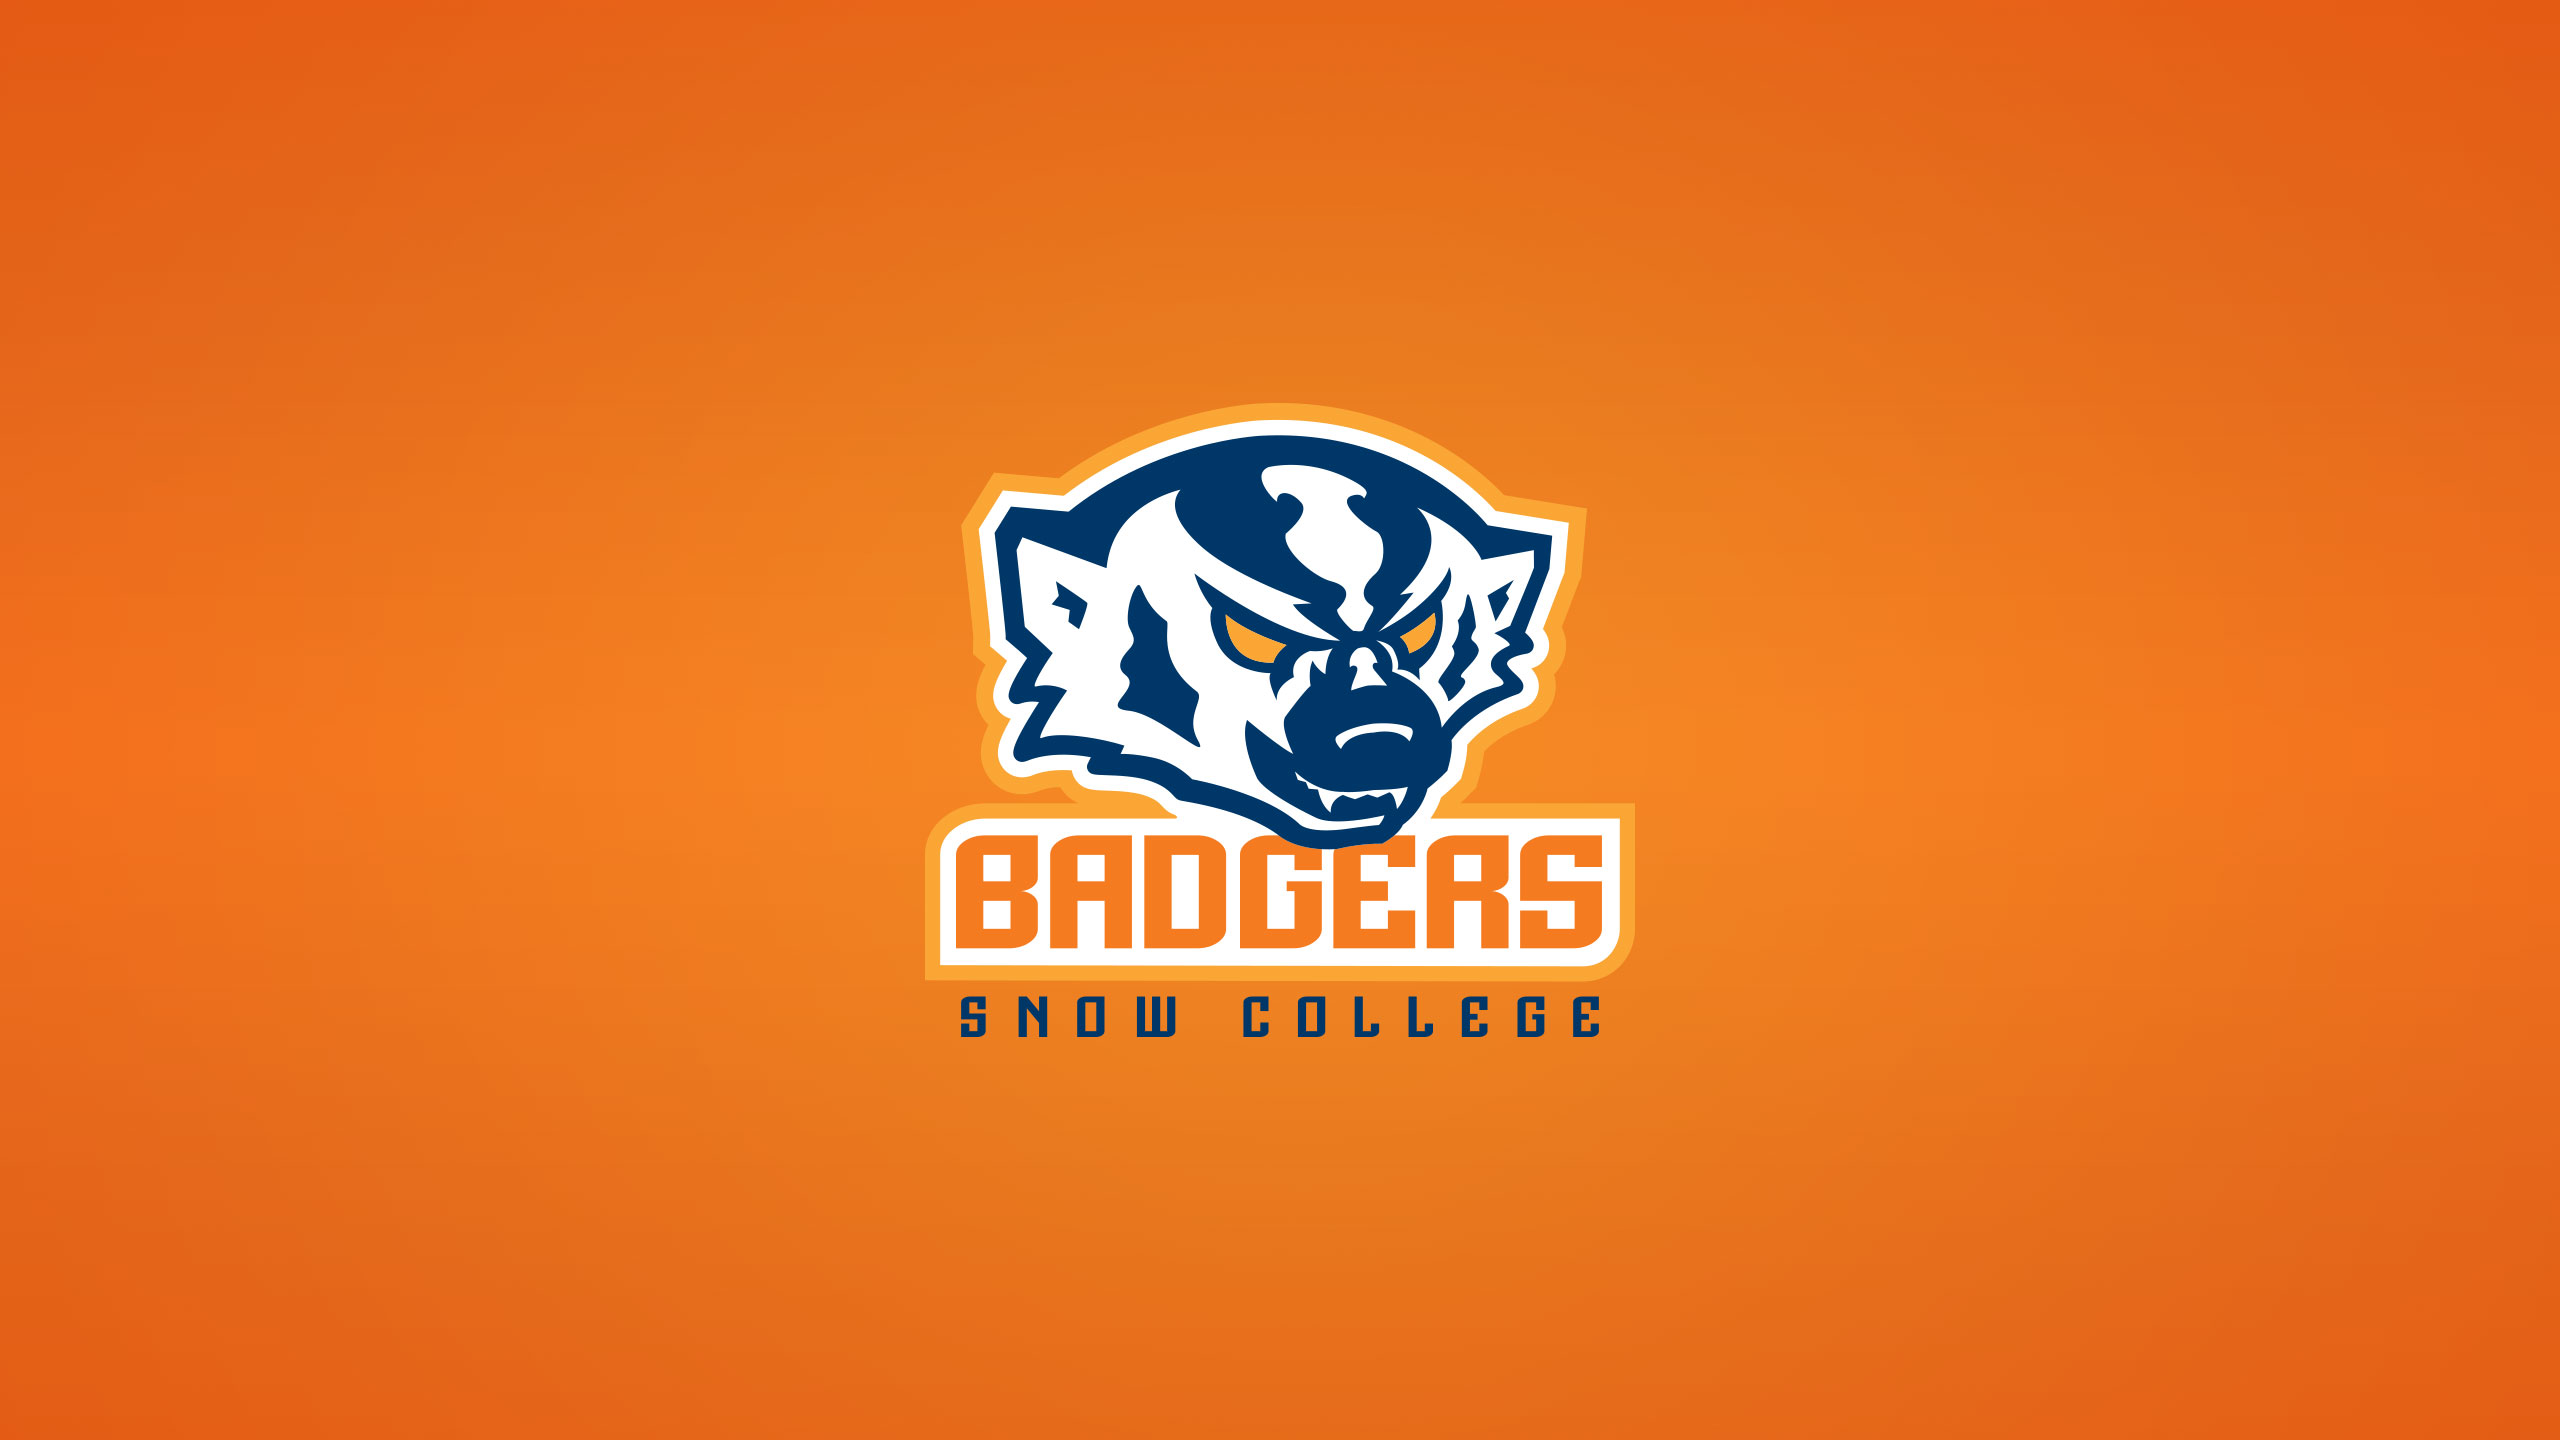 snow college brand wallpapers